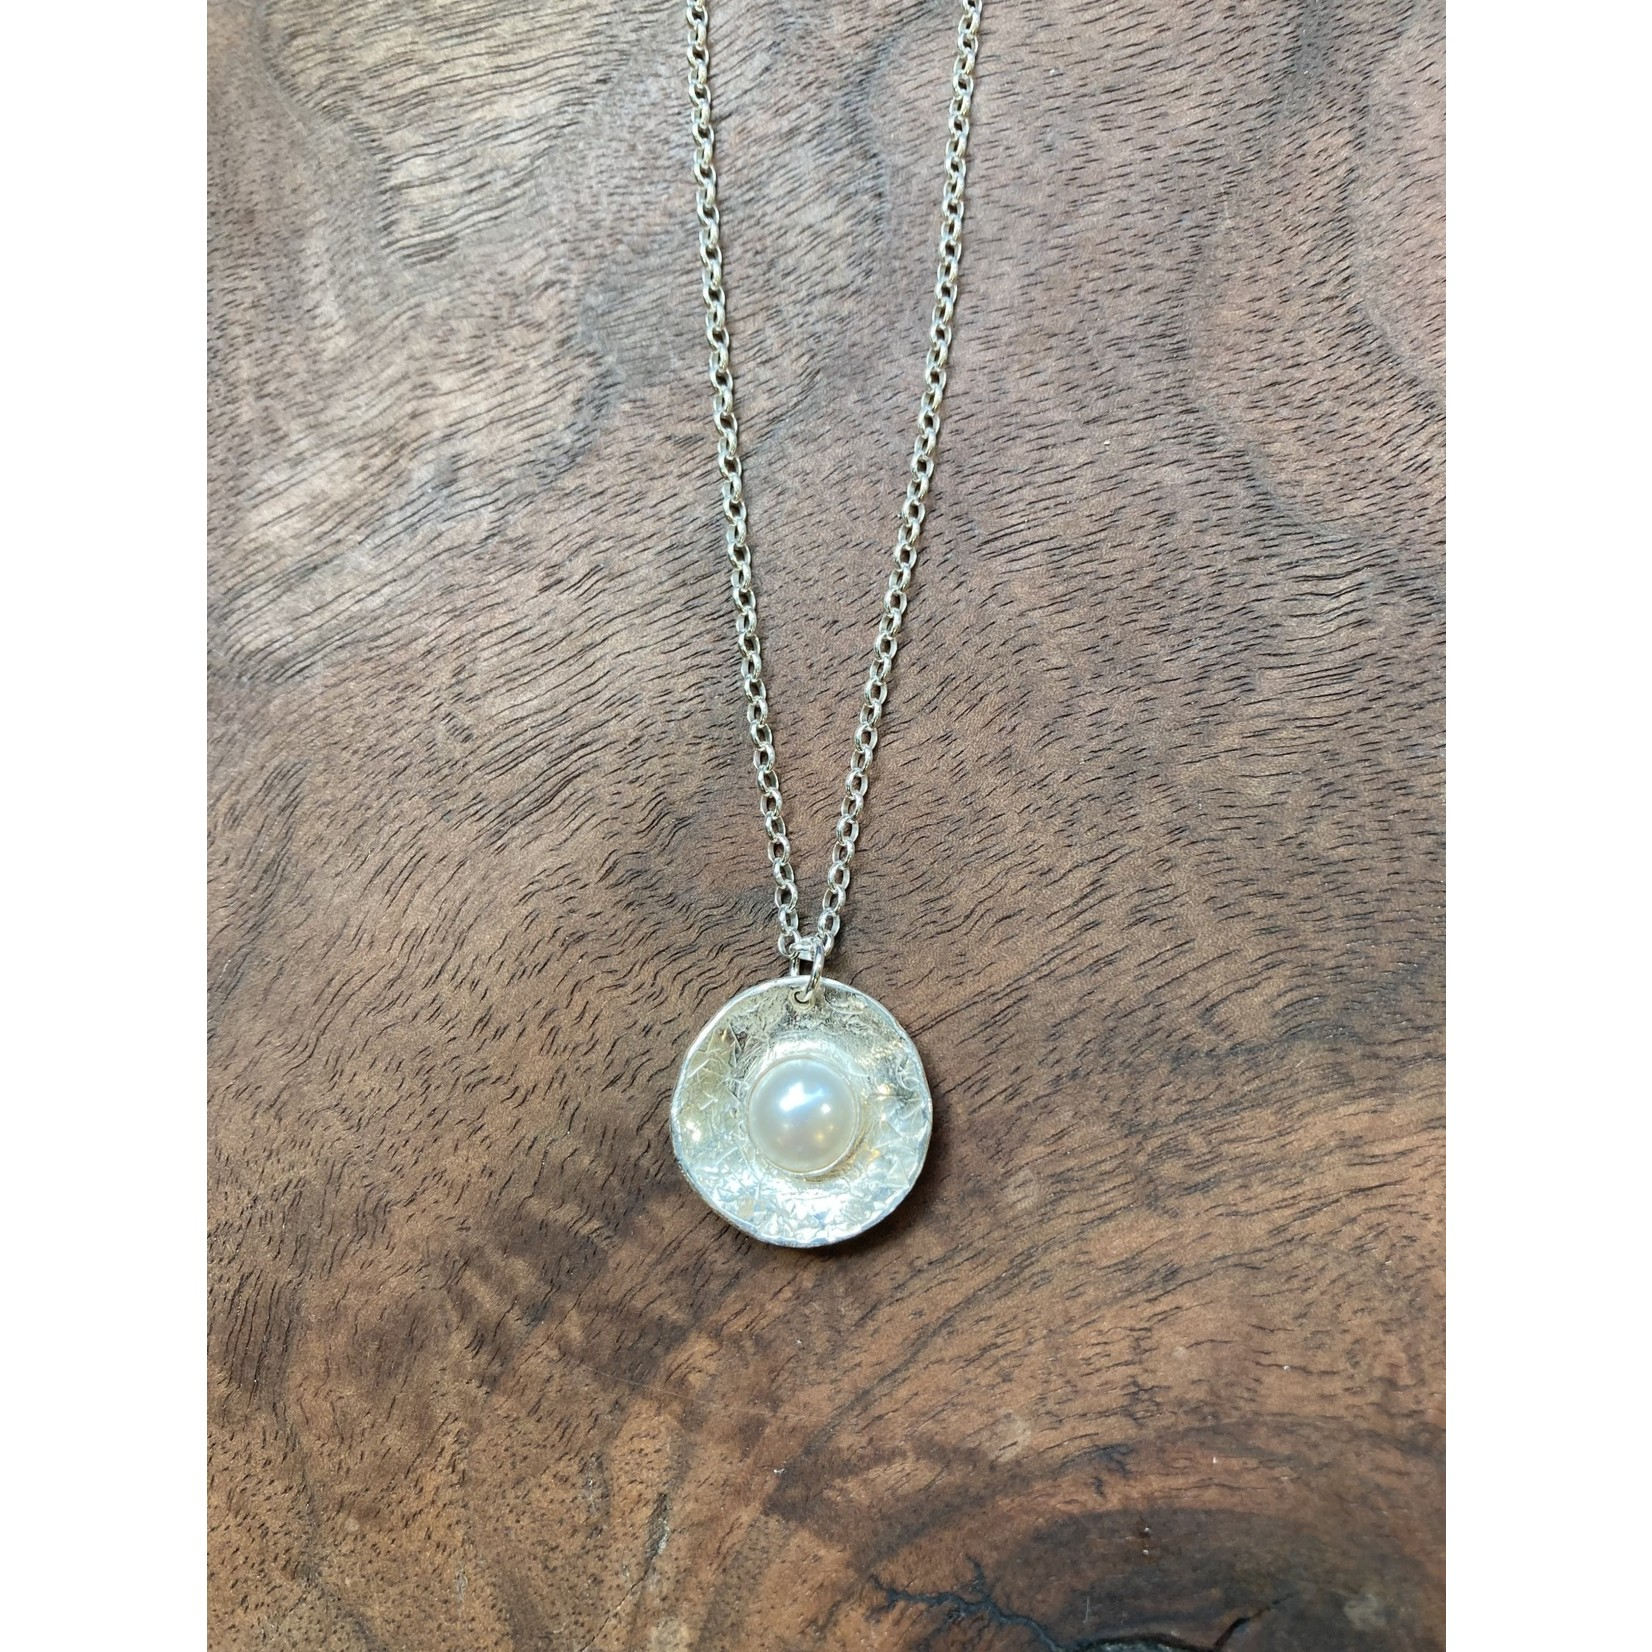 Jeanne Shuff Jeanne Marie Jewelry | #13 Crystal Pearl in Sterling Disk Necklace on Sterling Chain